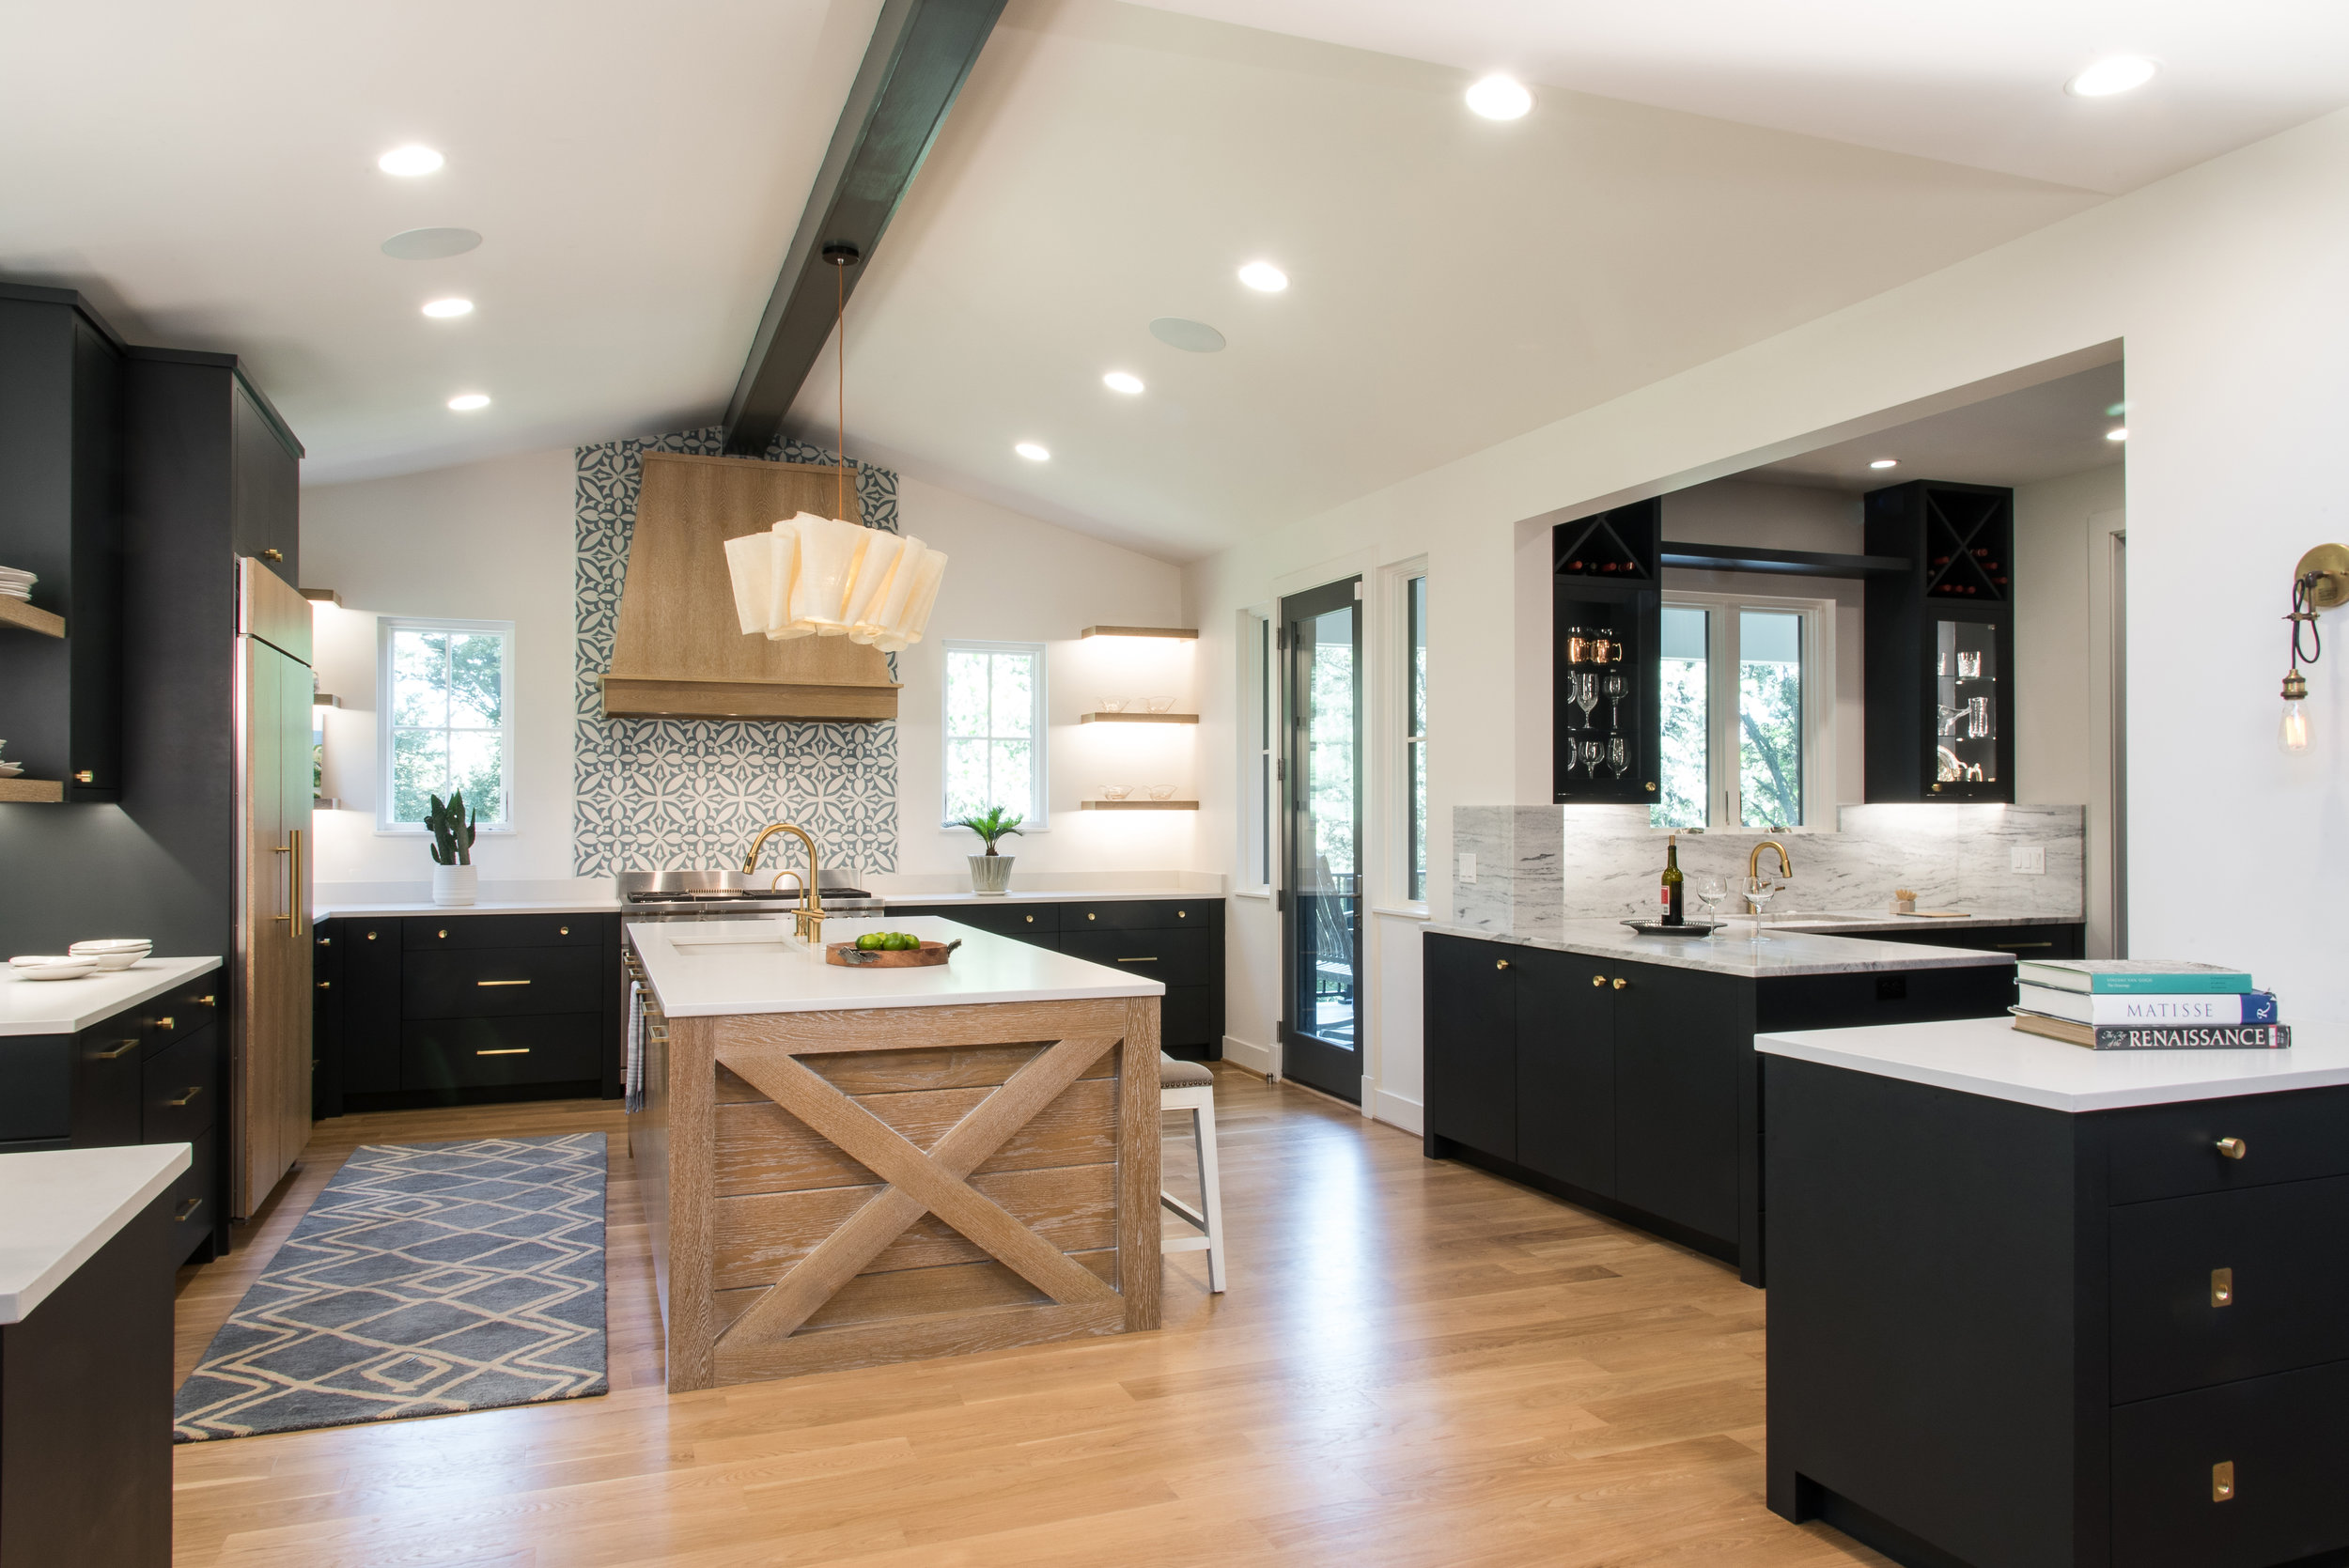 Matthews - Oak Valley kitchen and bath-8787.jpg